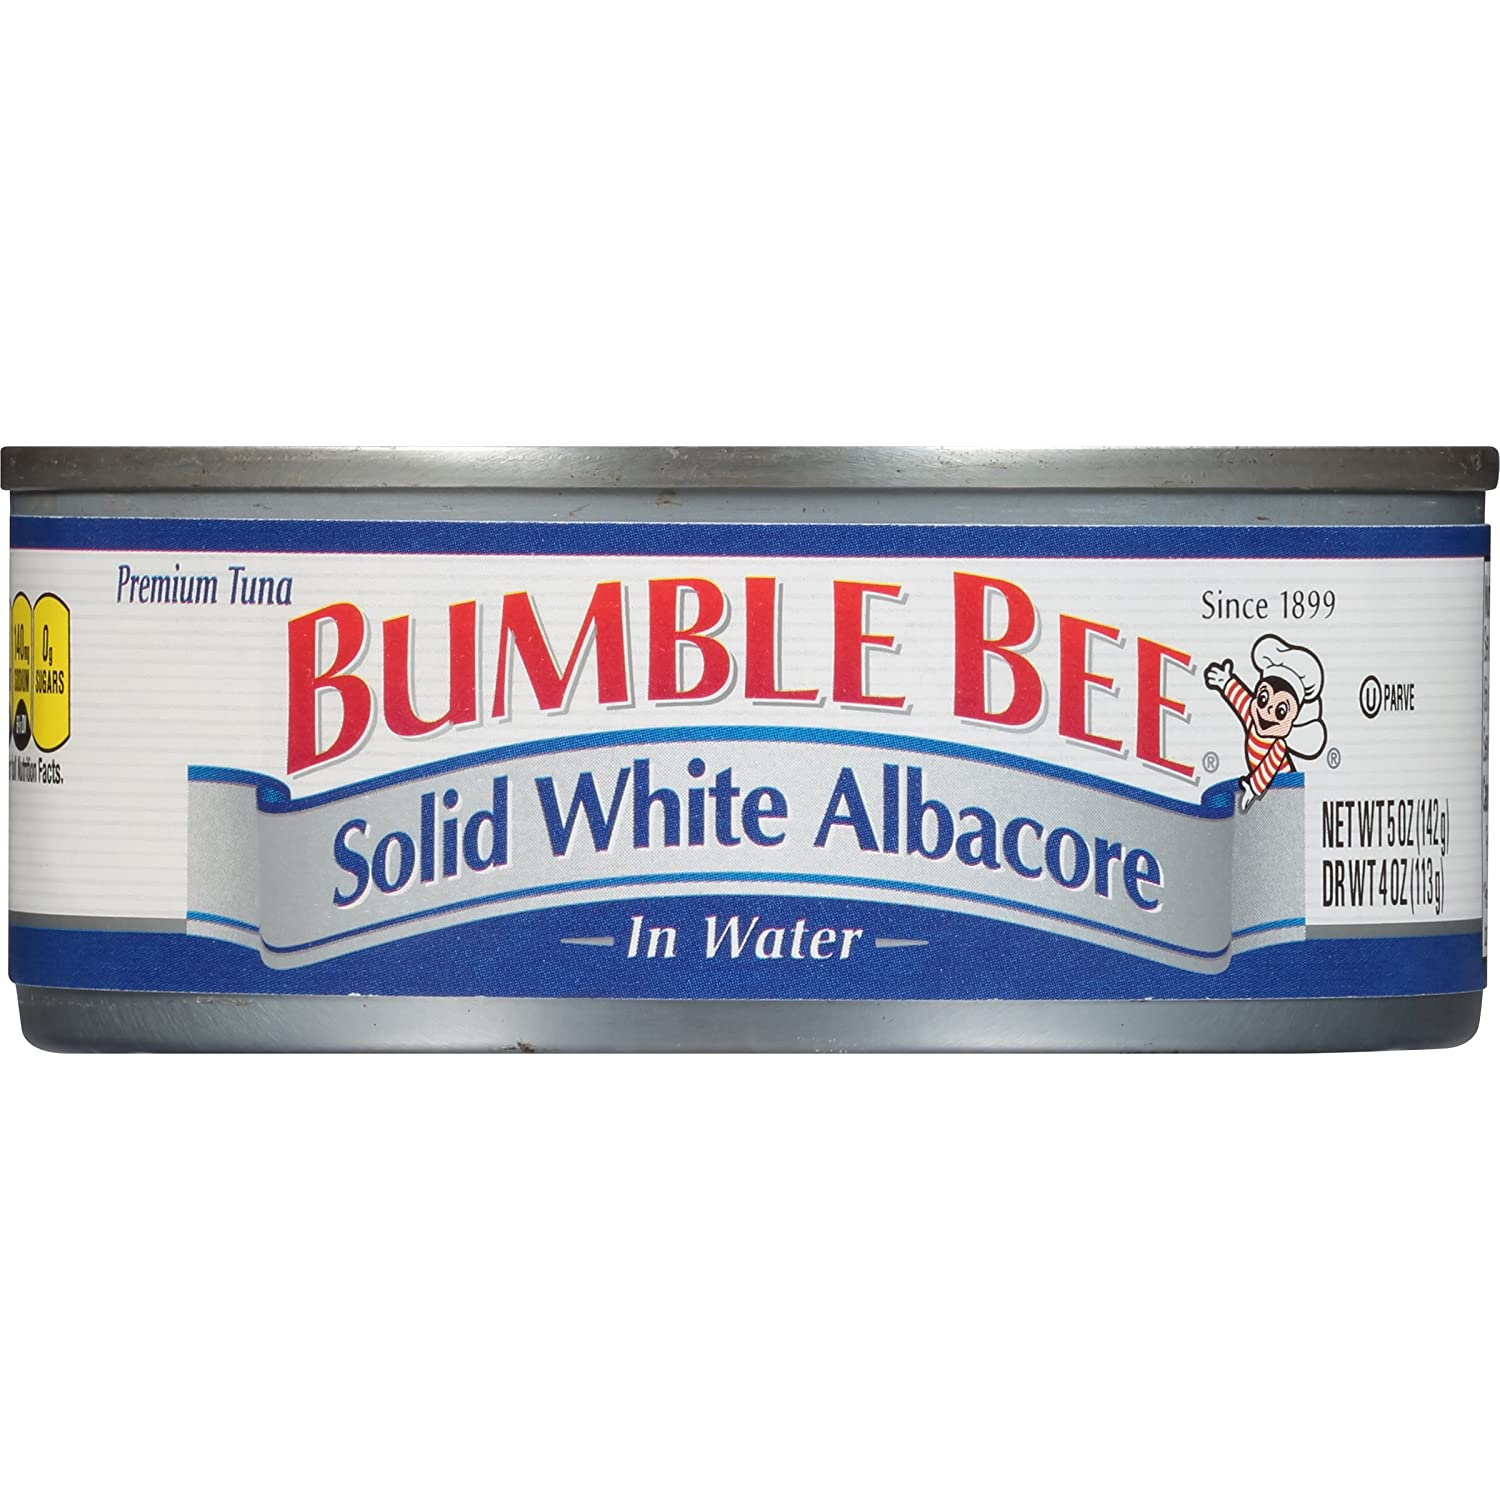 BUMBLE BEE Solid White Albacore Tuna in Water, Canned Tuna Fish, High Protein Food, 5 Ounce Can (Pack of 24)